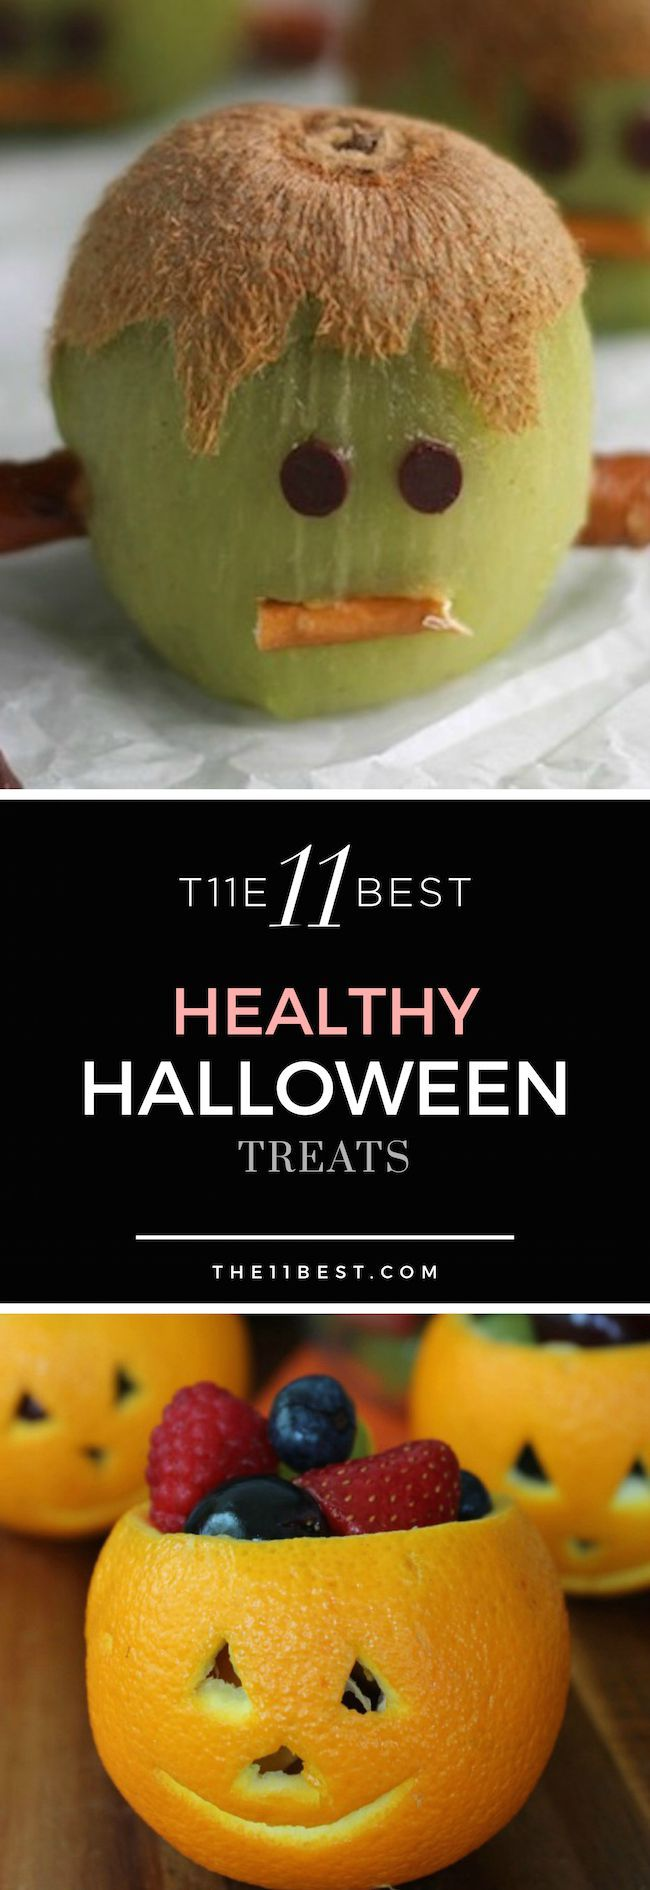 best 25 healthy halloween ideas on pinterest healthy halloween treats healthy halloween snacks and halloween snacks for kids - Best Halloween Dessert Recipes